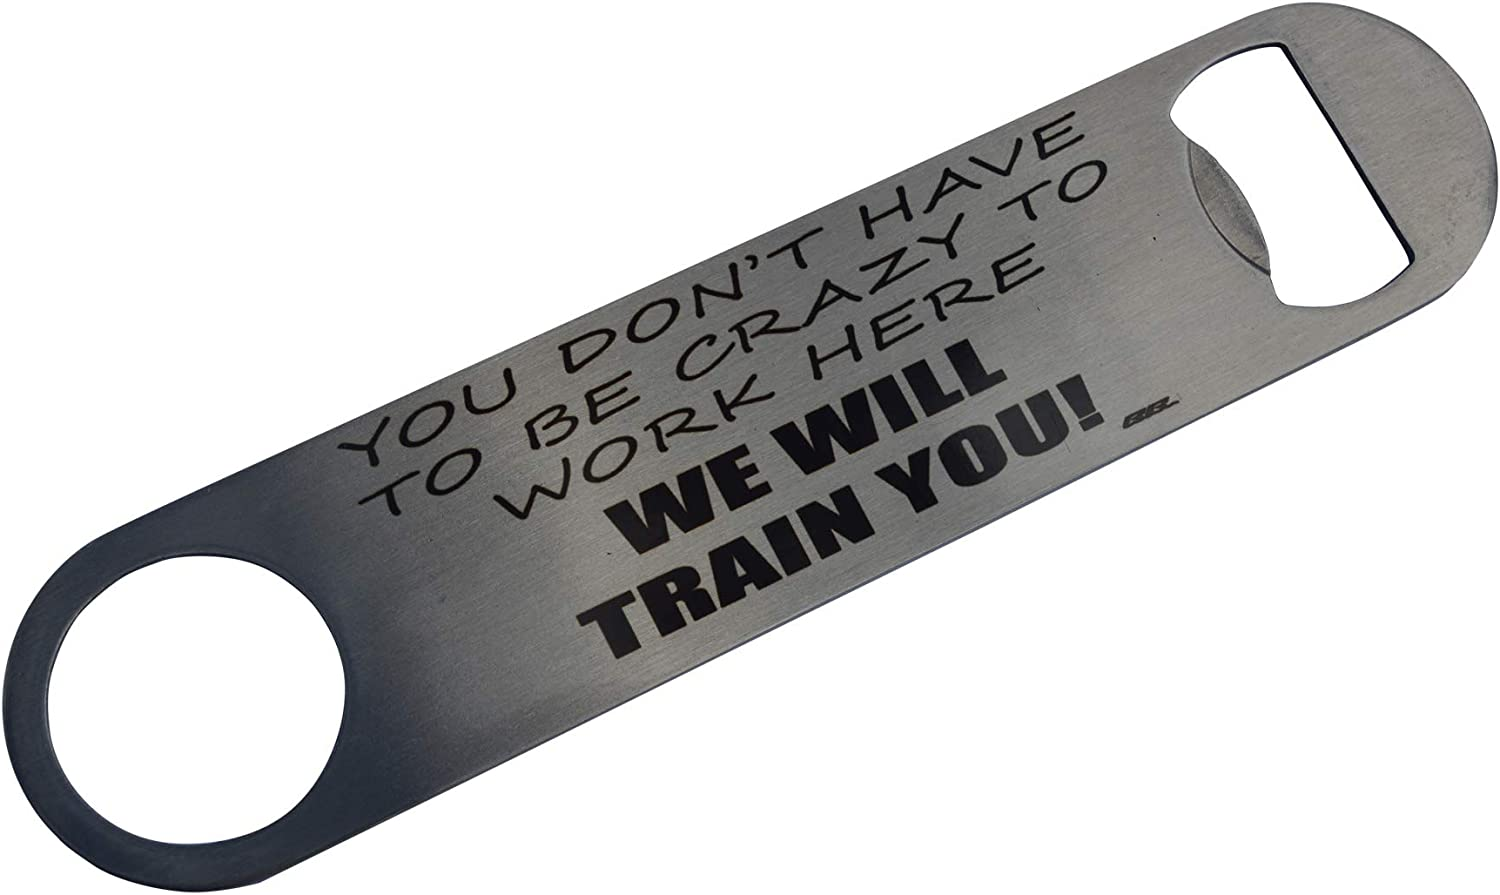 Funny Office Work Job Bottle Opener Heavy Duty Gift Crazy We Will Train You